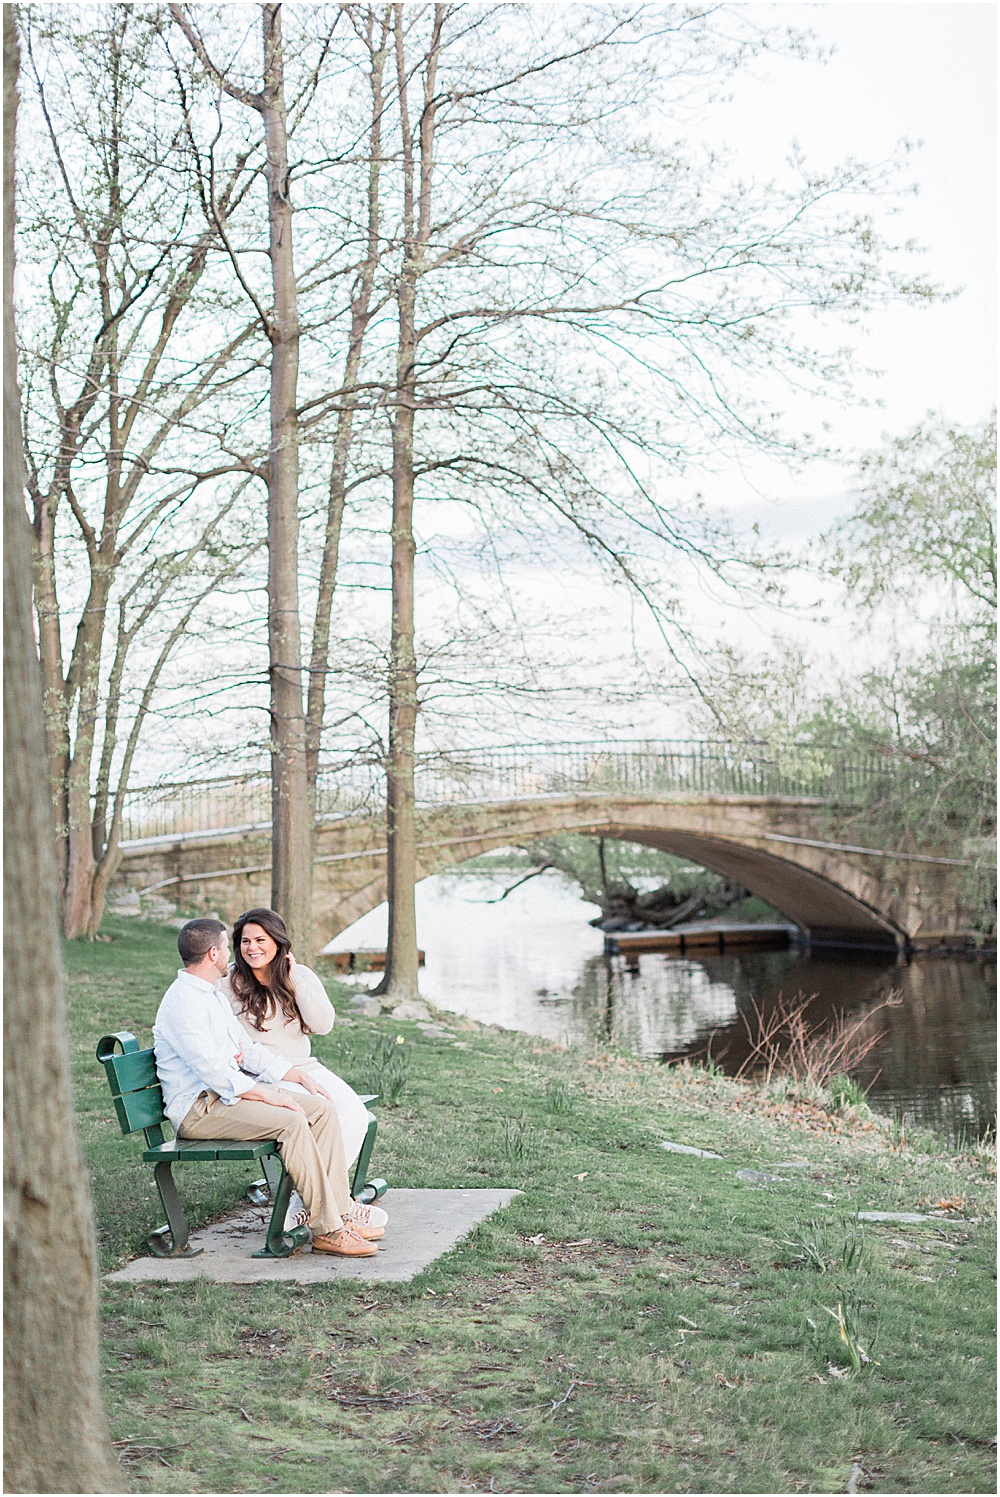 boston_charles_river_esplanaude_back_bay_cherry_blossoms_spring_engagement_session_boston_charles_river_wedding_photographer_meredith_jane_photography_photo_0196.jpg